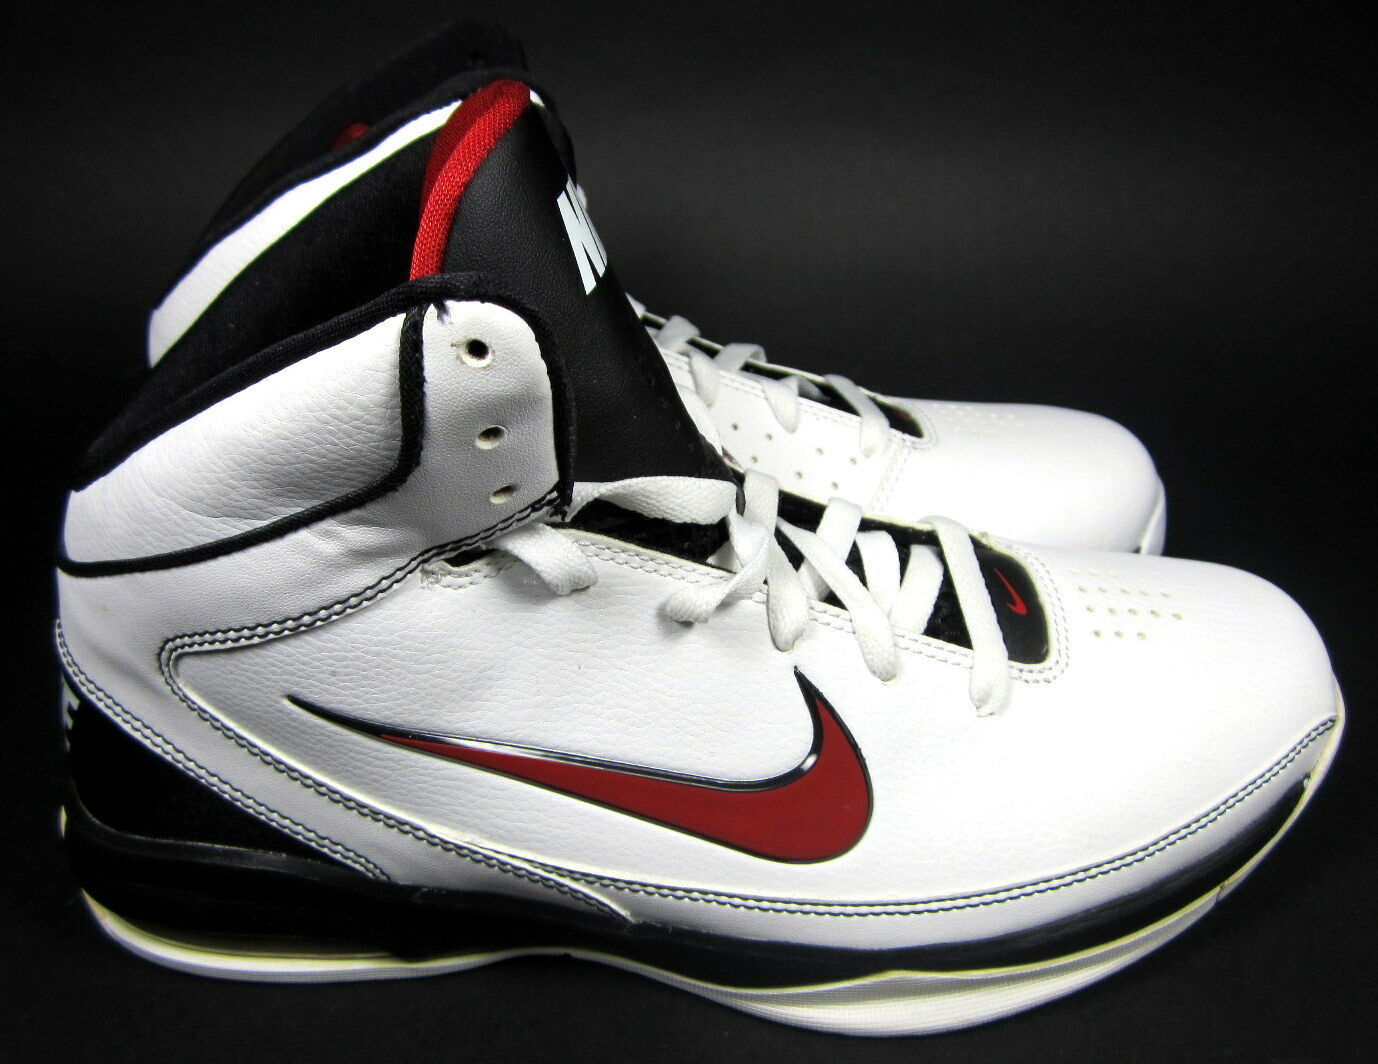 pretty nice 714ba 61707 ... Nike Nike Nike Shoes Air Max Hyped RARE Athletic White Red Black  Sneakers Size ...